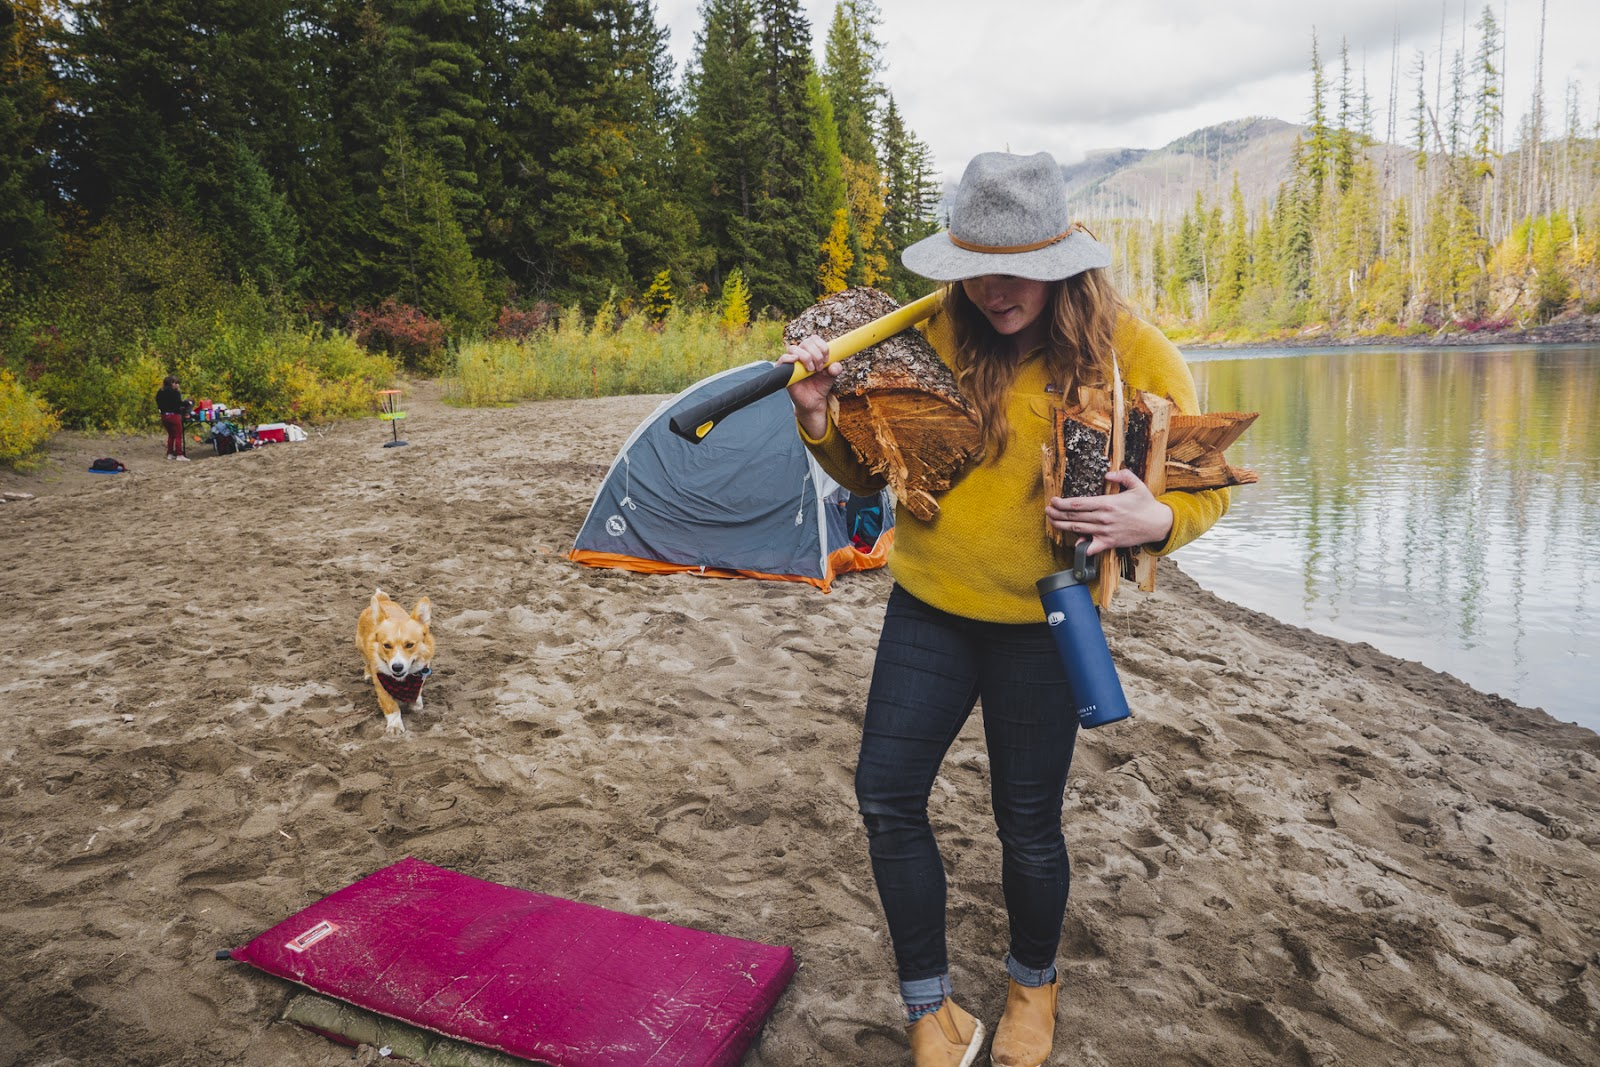 GSI Outdoors Camp cookware and Insulated Water bottles